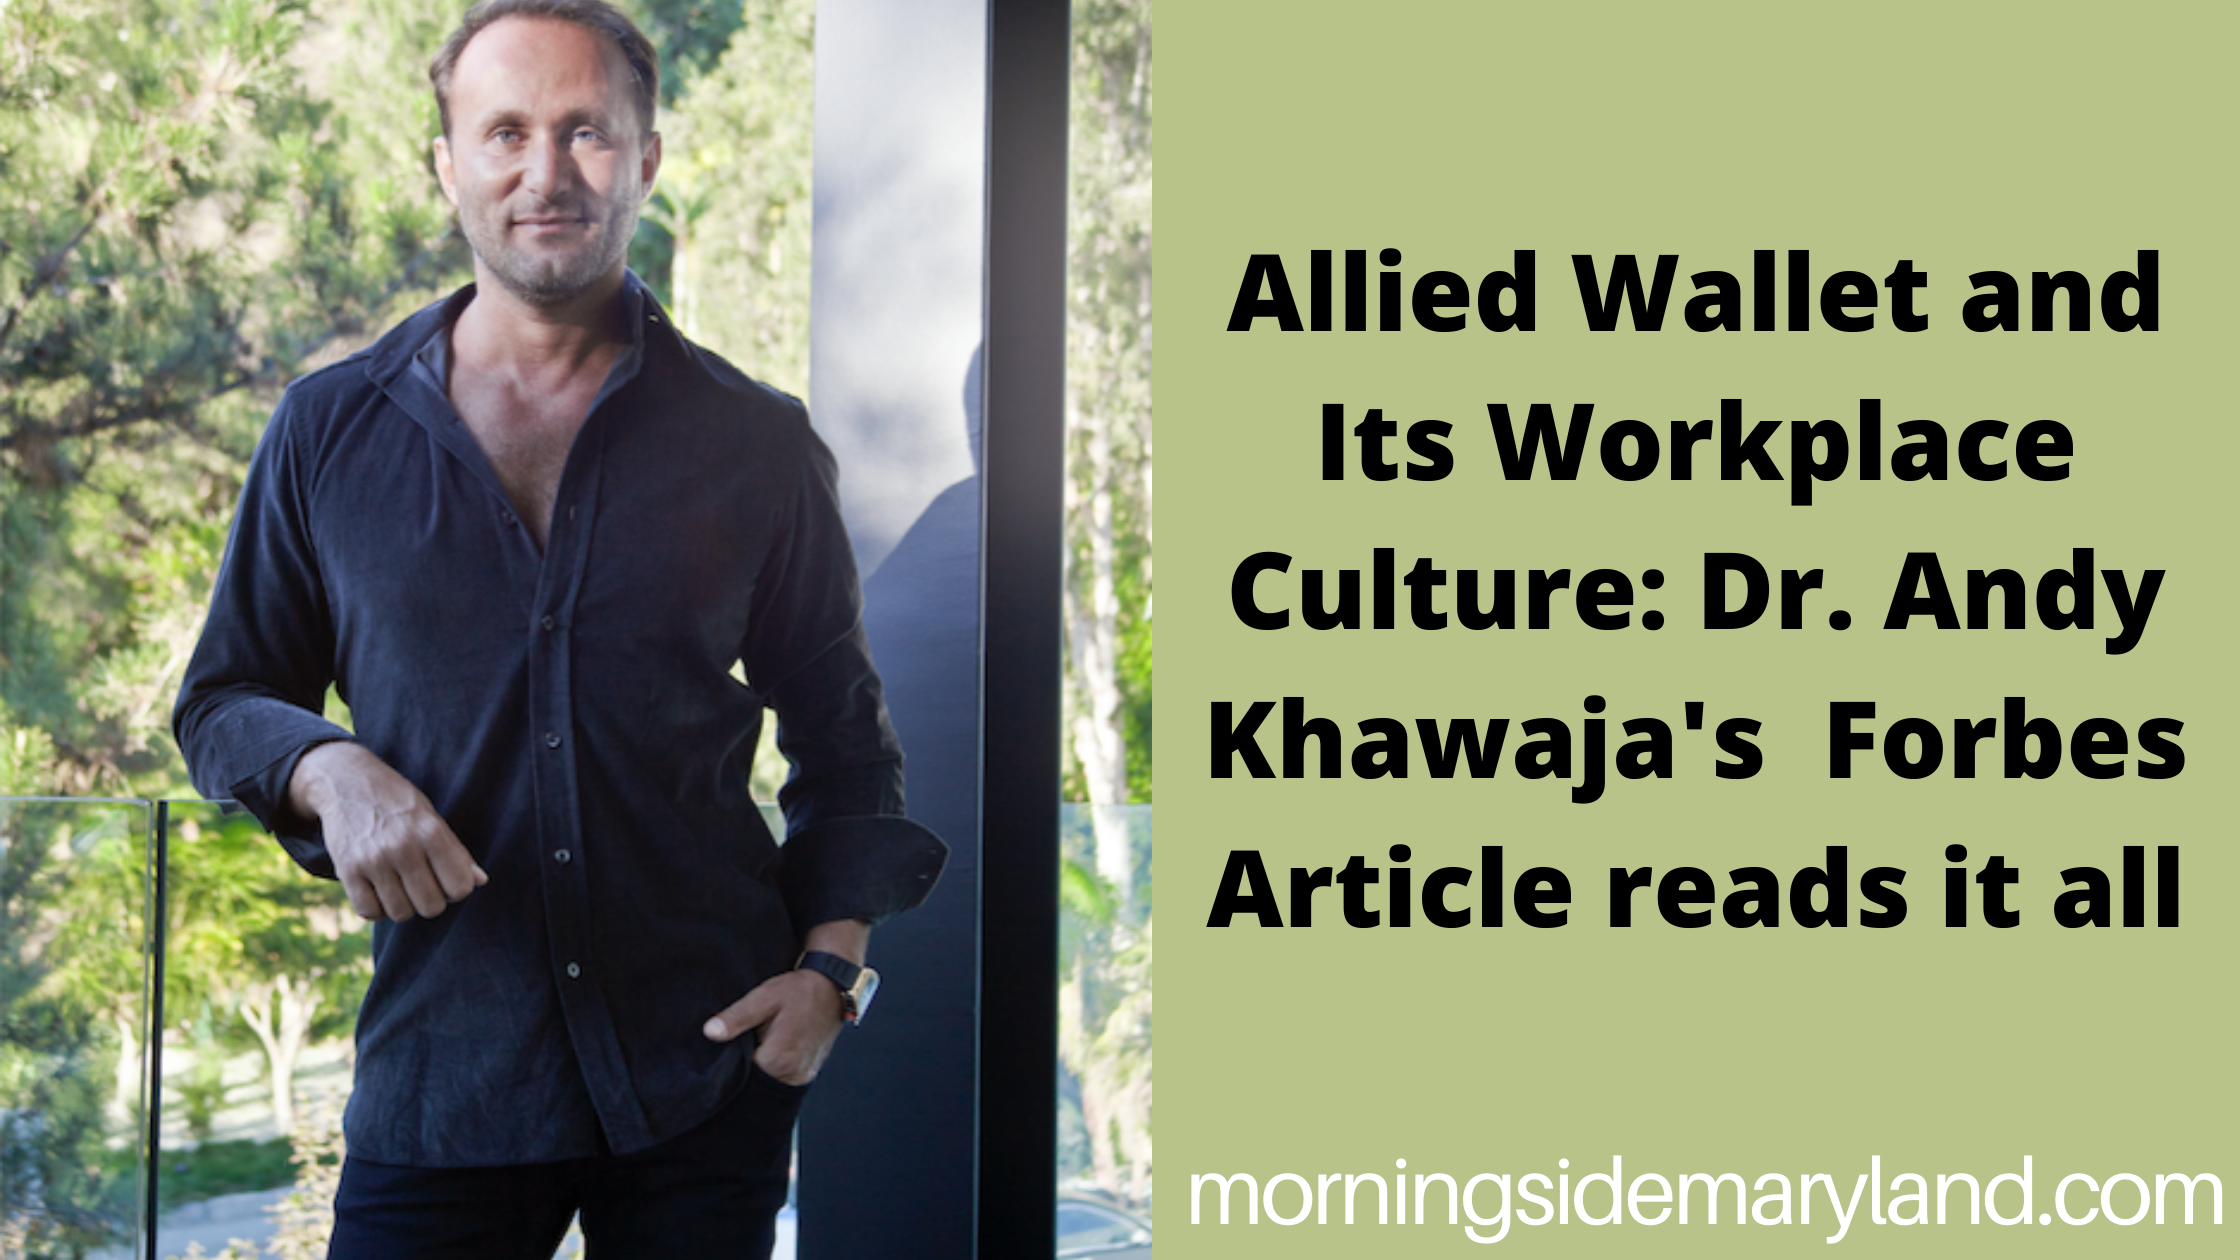 Allied Wallet and Its Workplace Culture: Dr. Andy Khawaja's Forbes Article reads it all